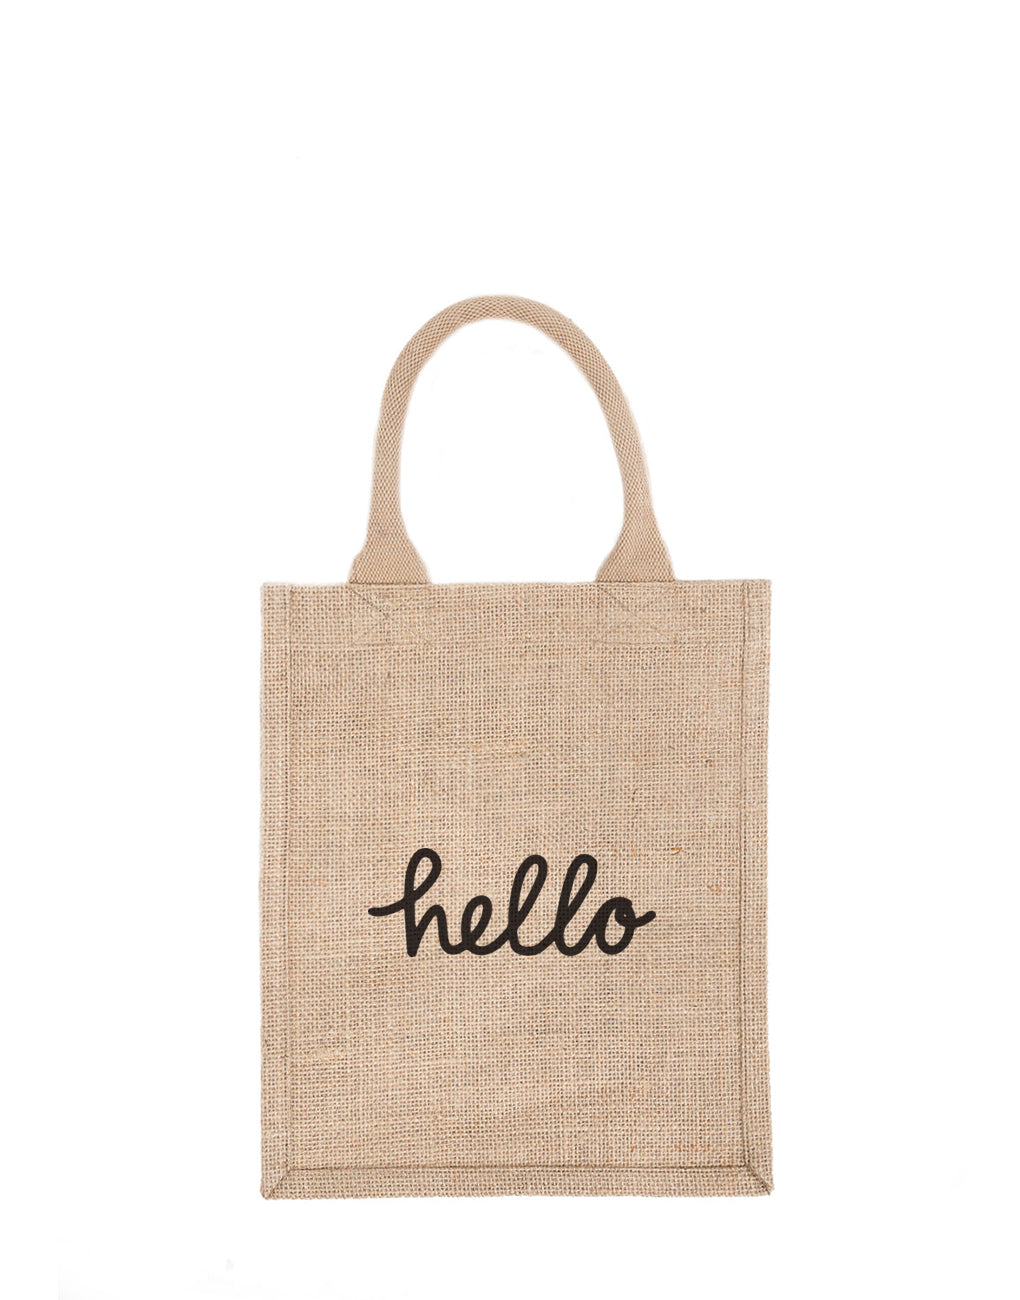 Medium Hello Reusable Gift Tote In Black Font | The Little Market